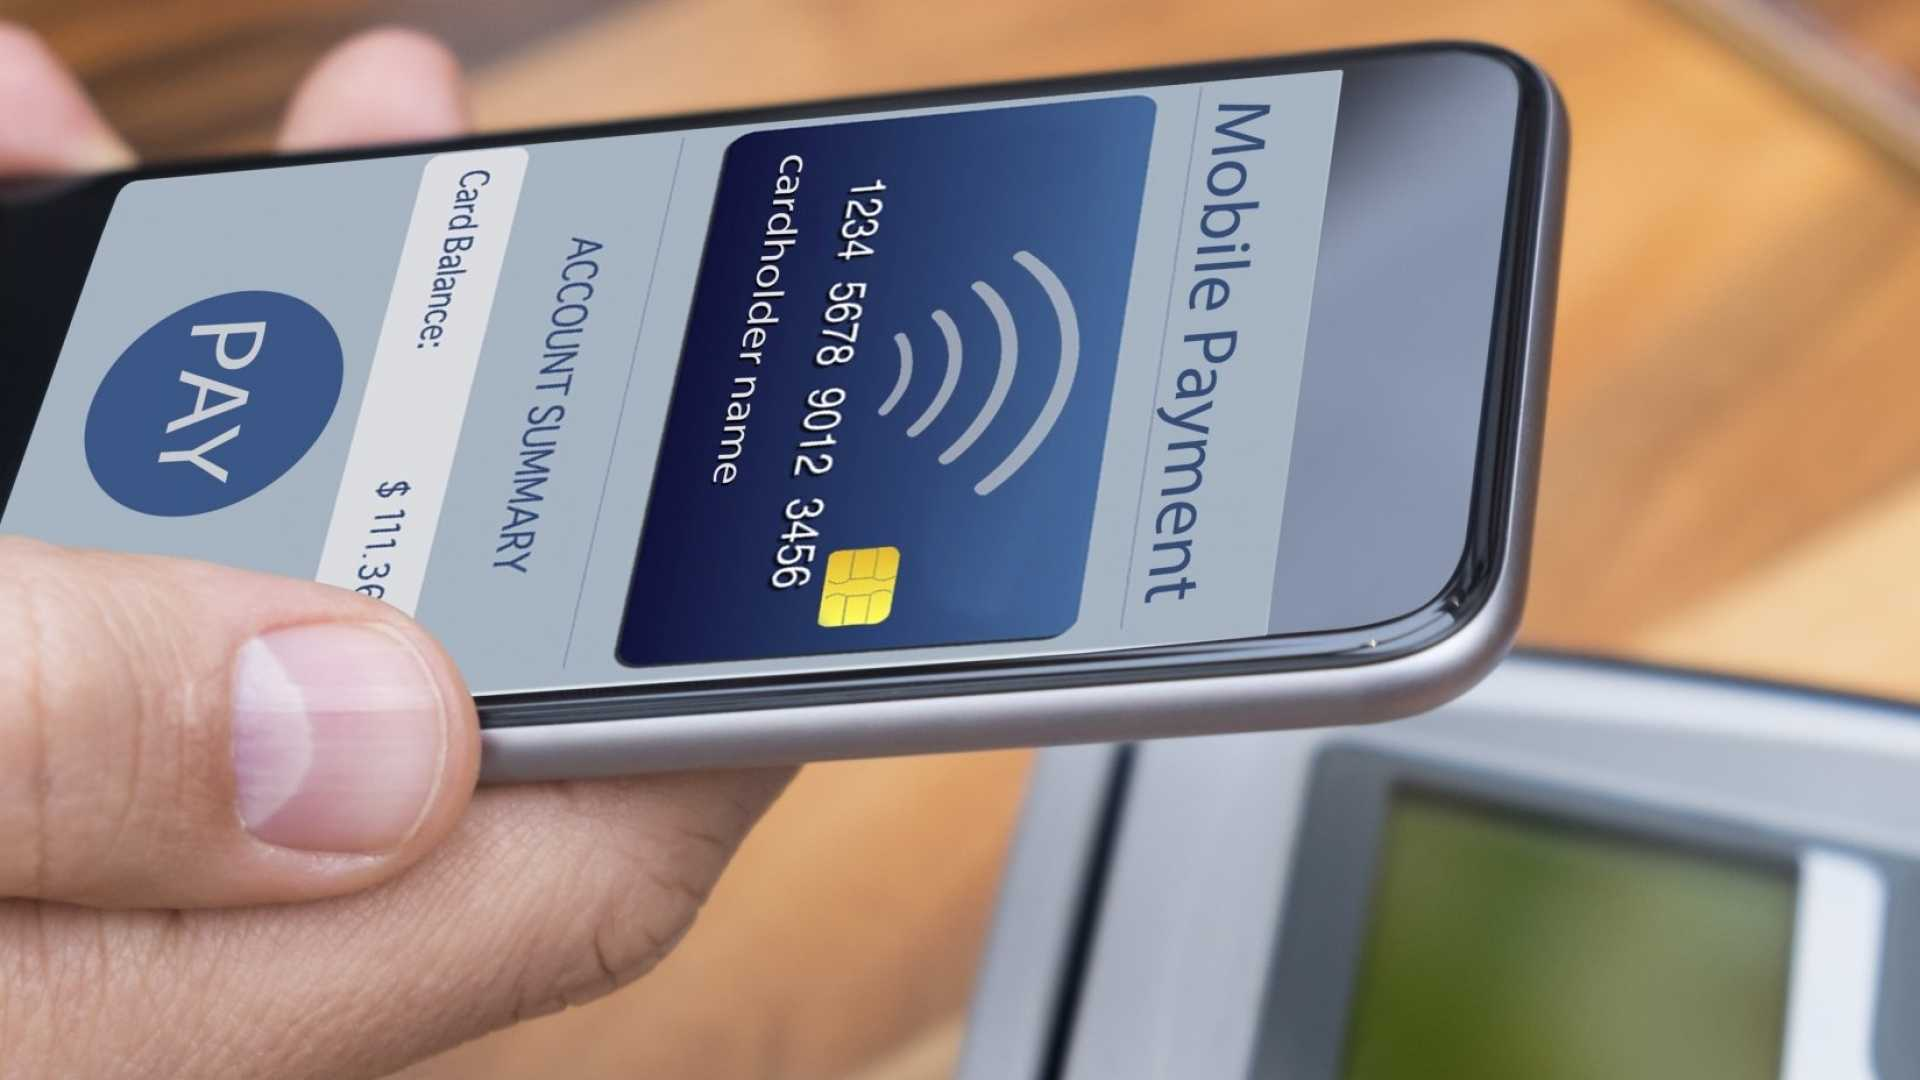 More than 5 billion people have access to mobile phones and only 1.2 billion have bank accounts